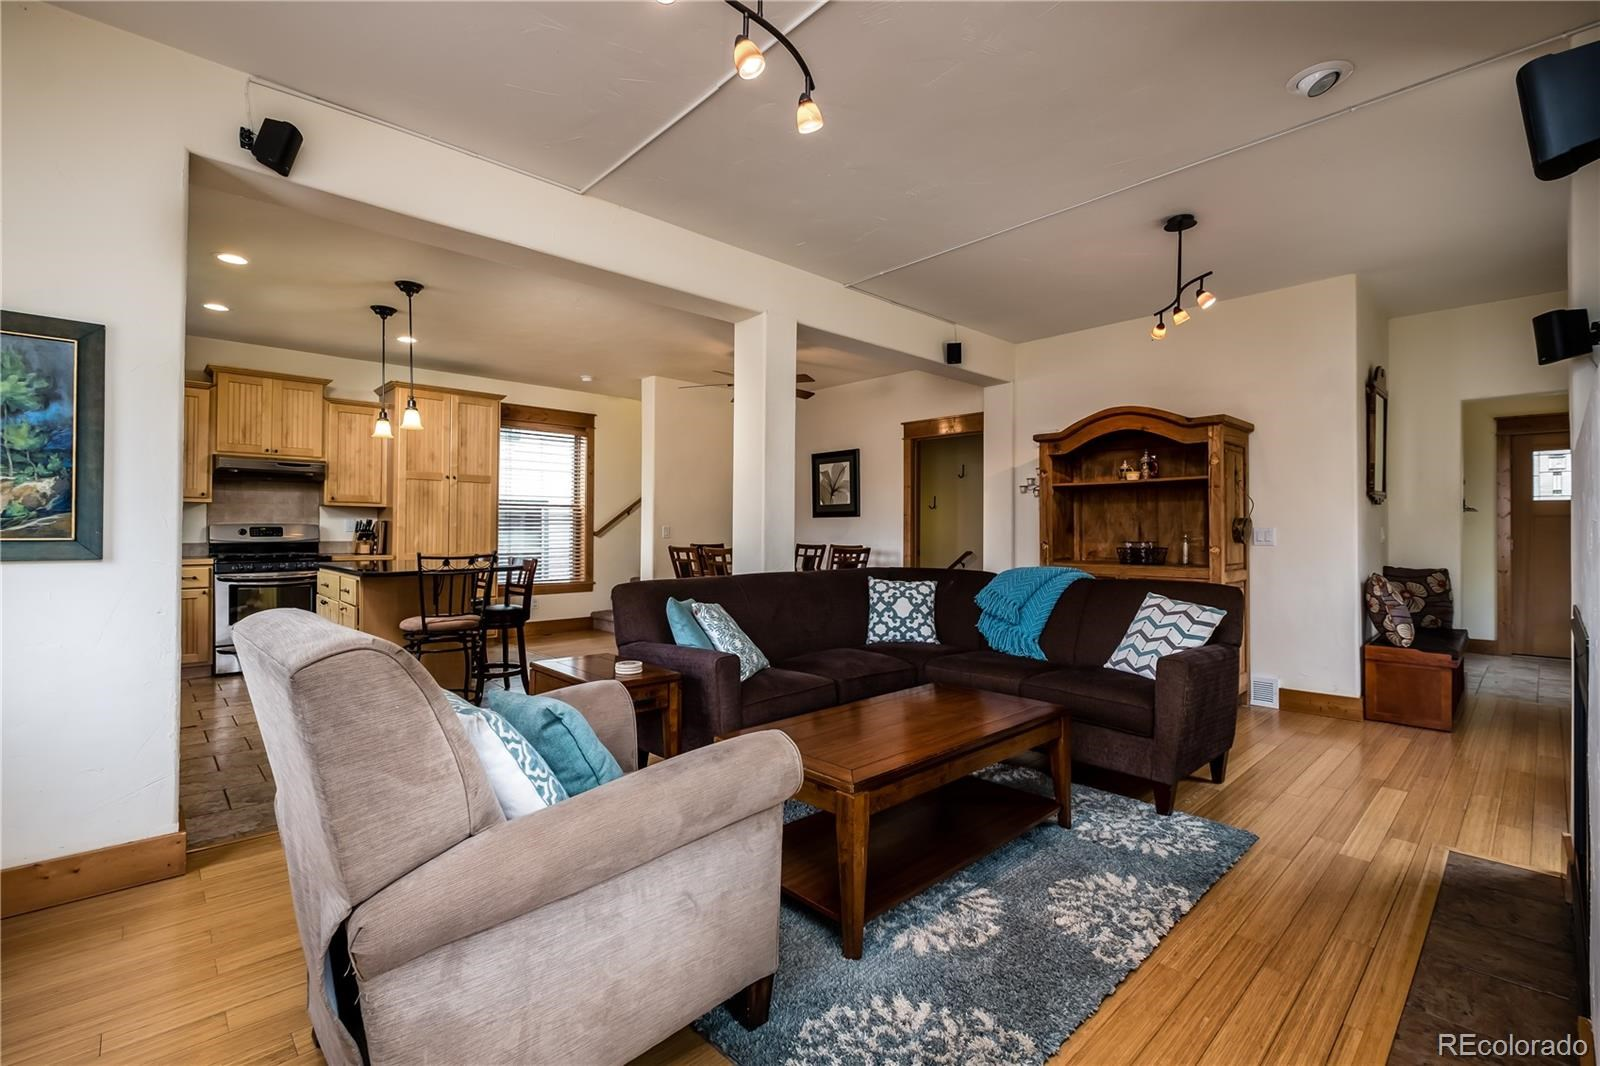 MLS# 4455117 - 1 - 575  Evans Street, Steamboat Springs, CO 80487